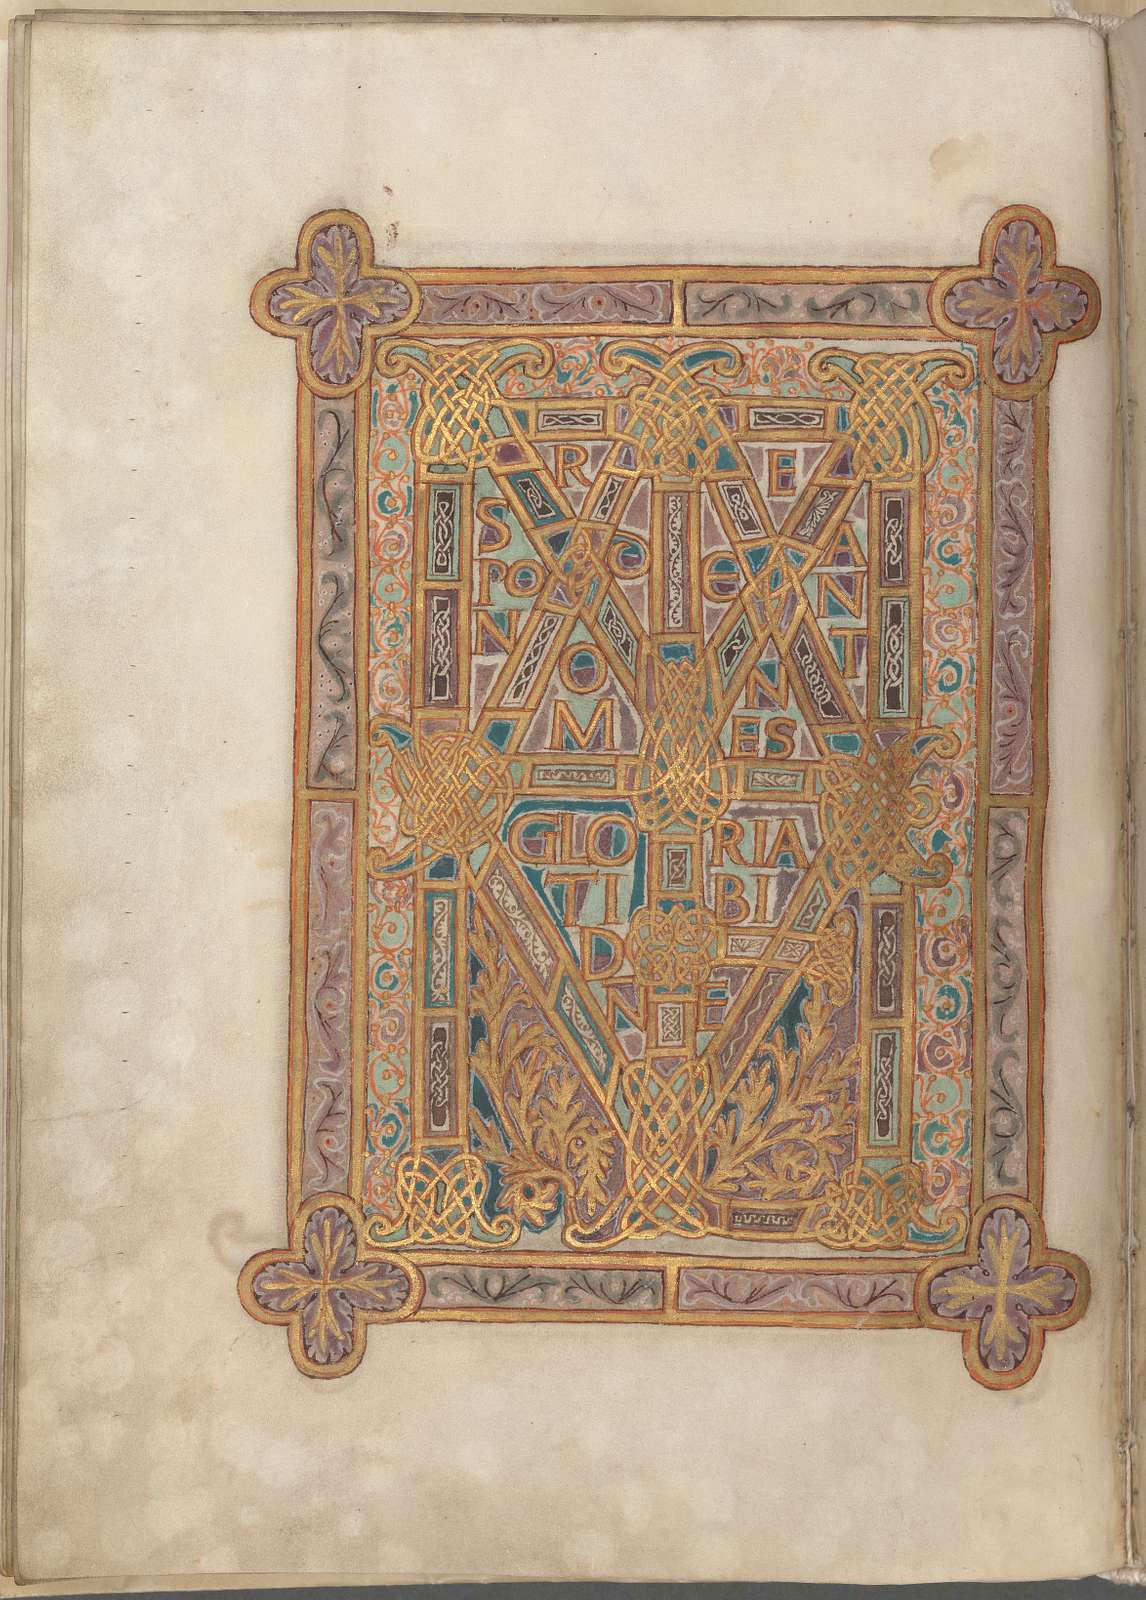 Elaborate text page in gold, purple and green:  Mattheum/Respondeat omnes gloria tibi Domine